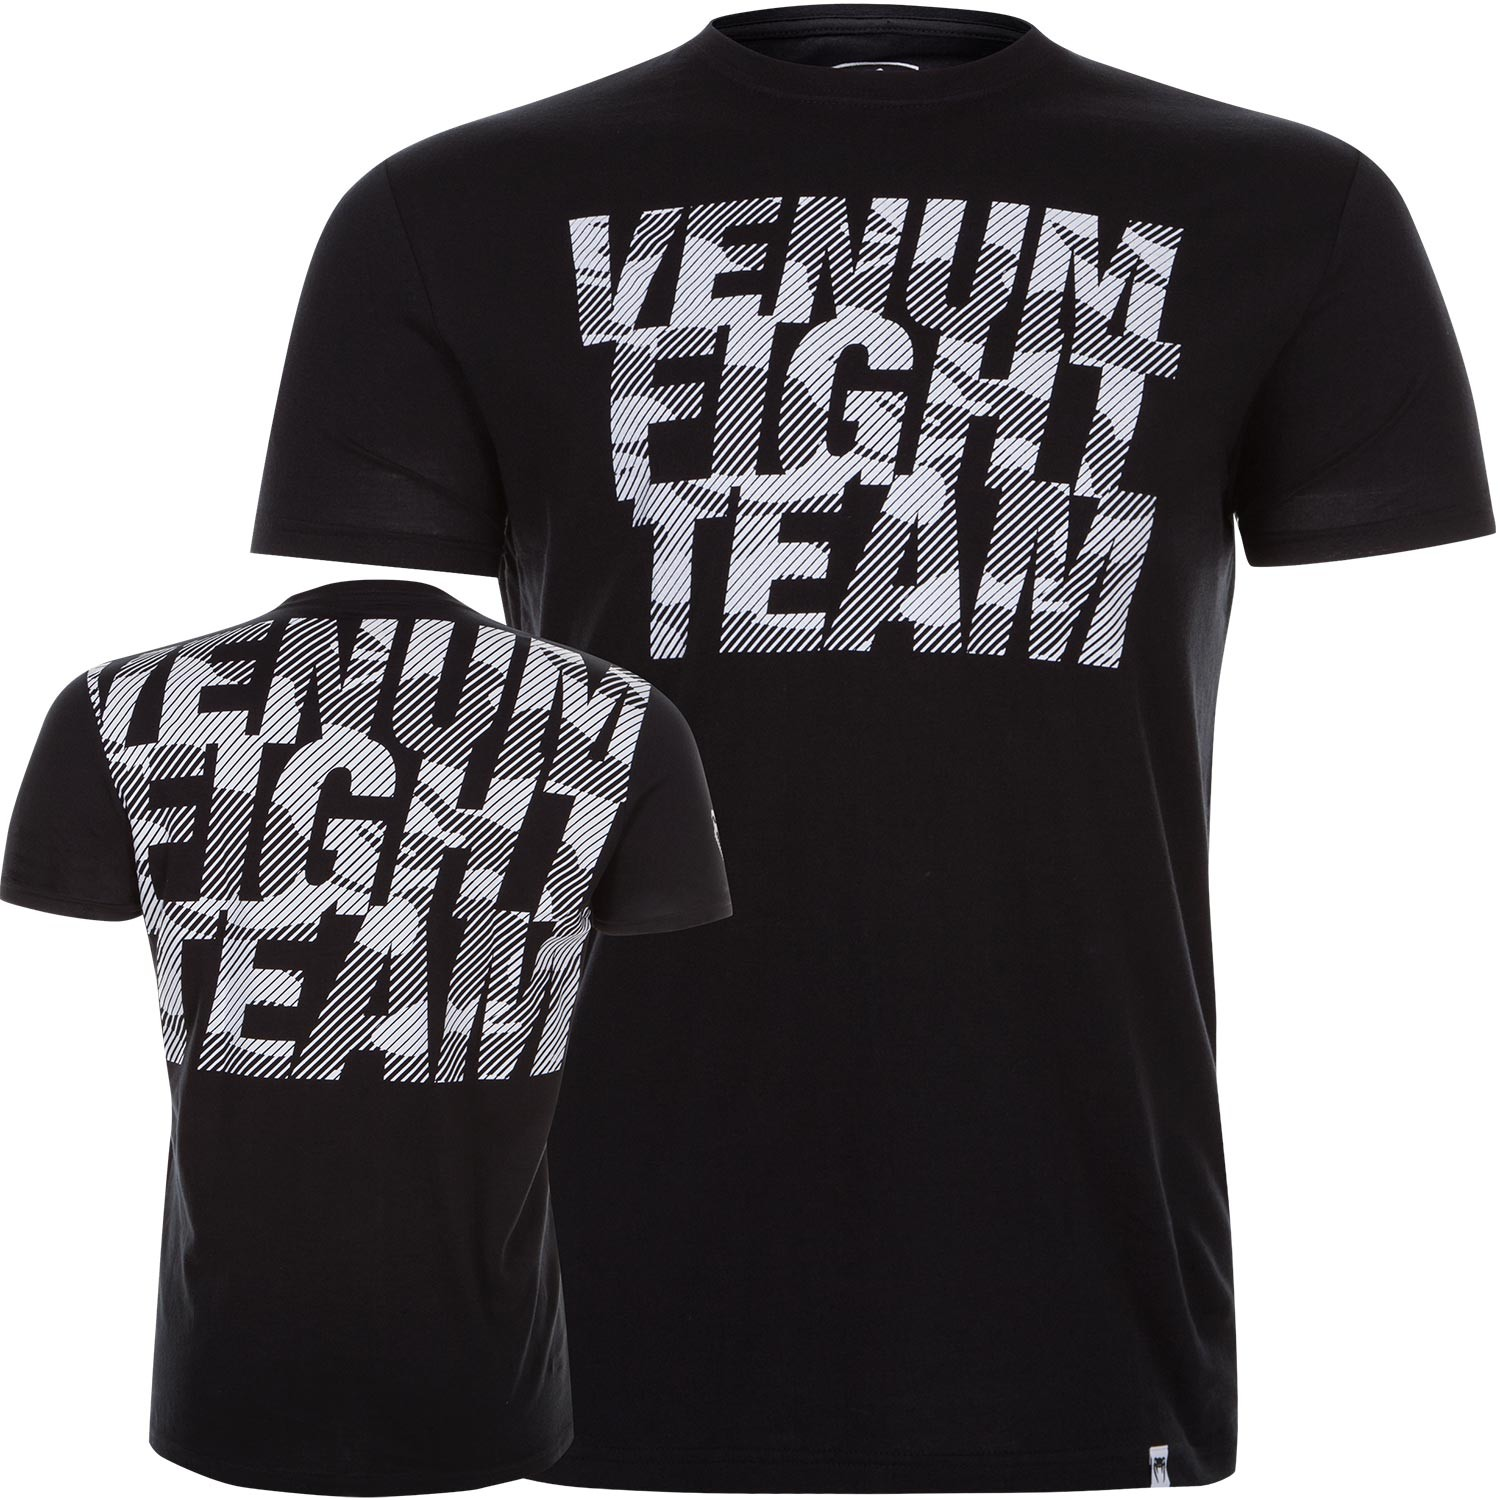 Футболка Venum Speed Camo Urban Tee Black<br>Вес кг: 200.00000000;